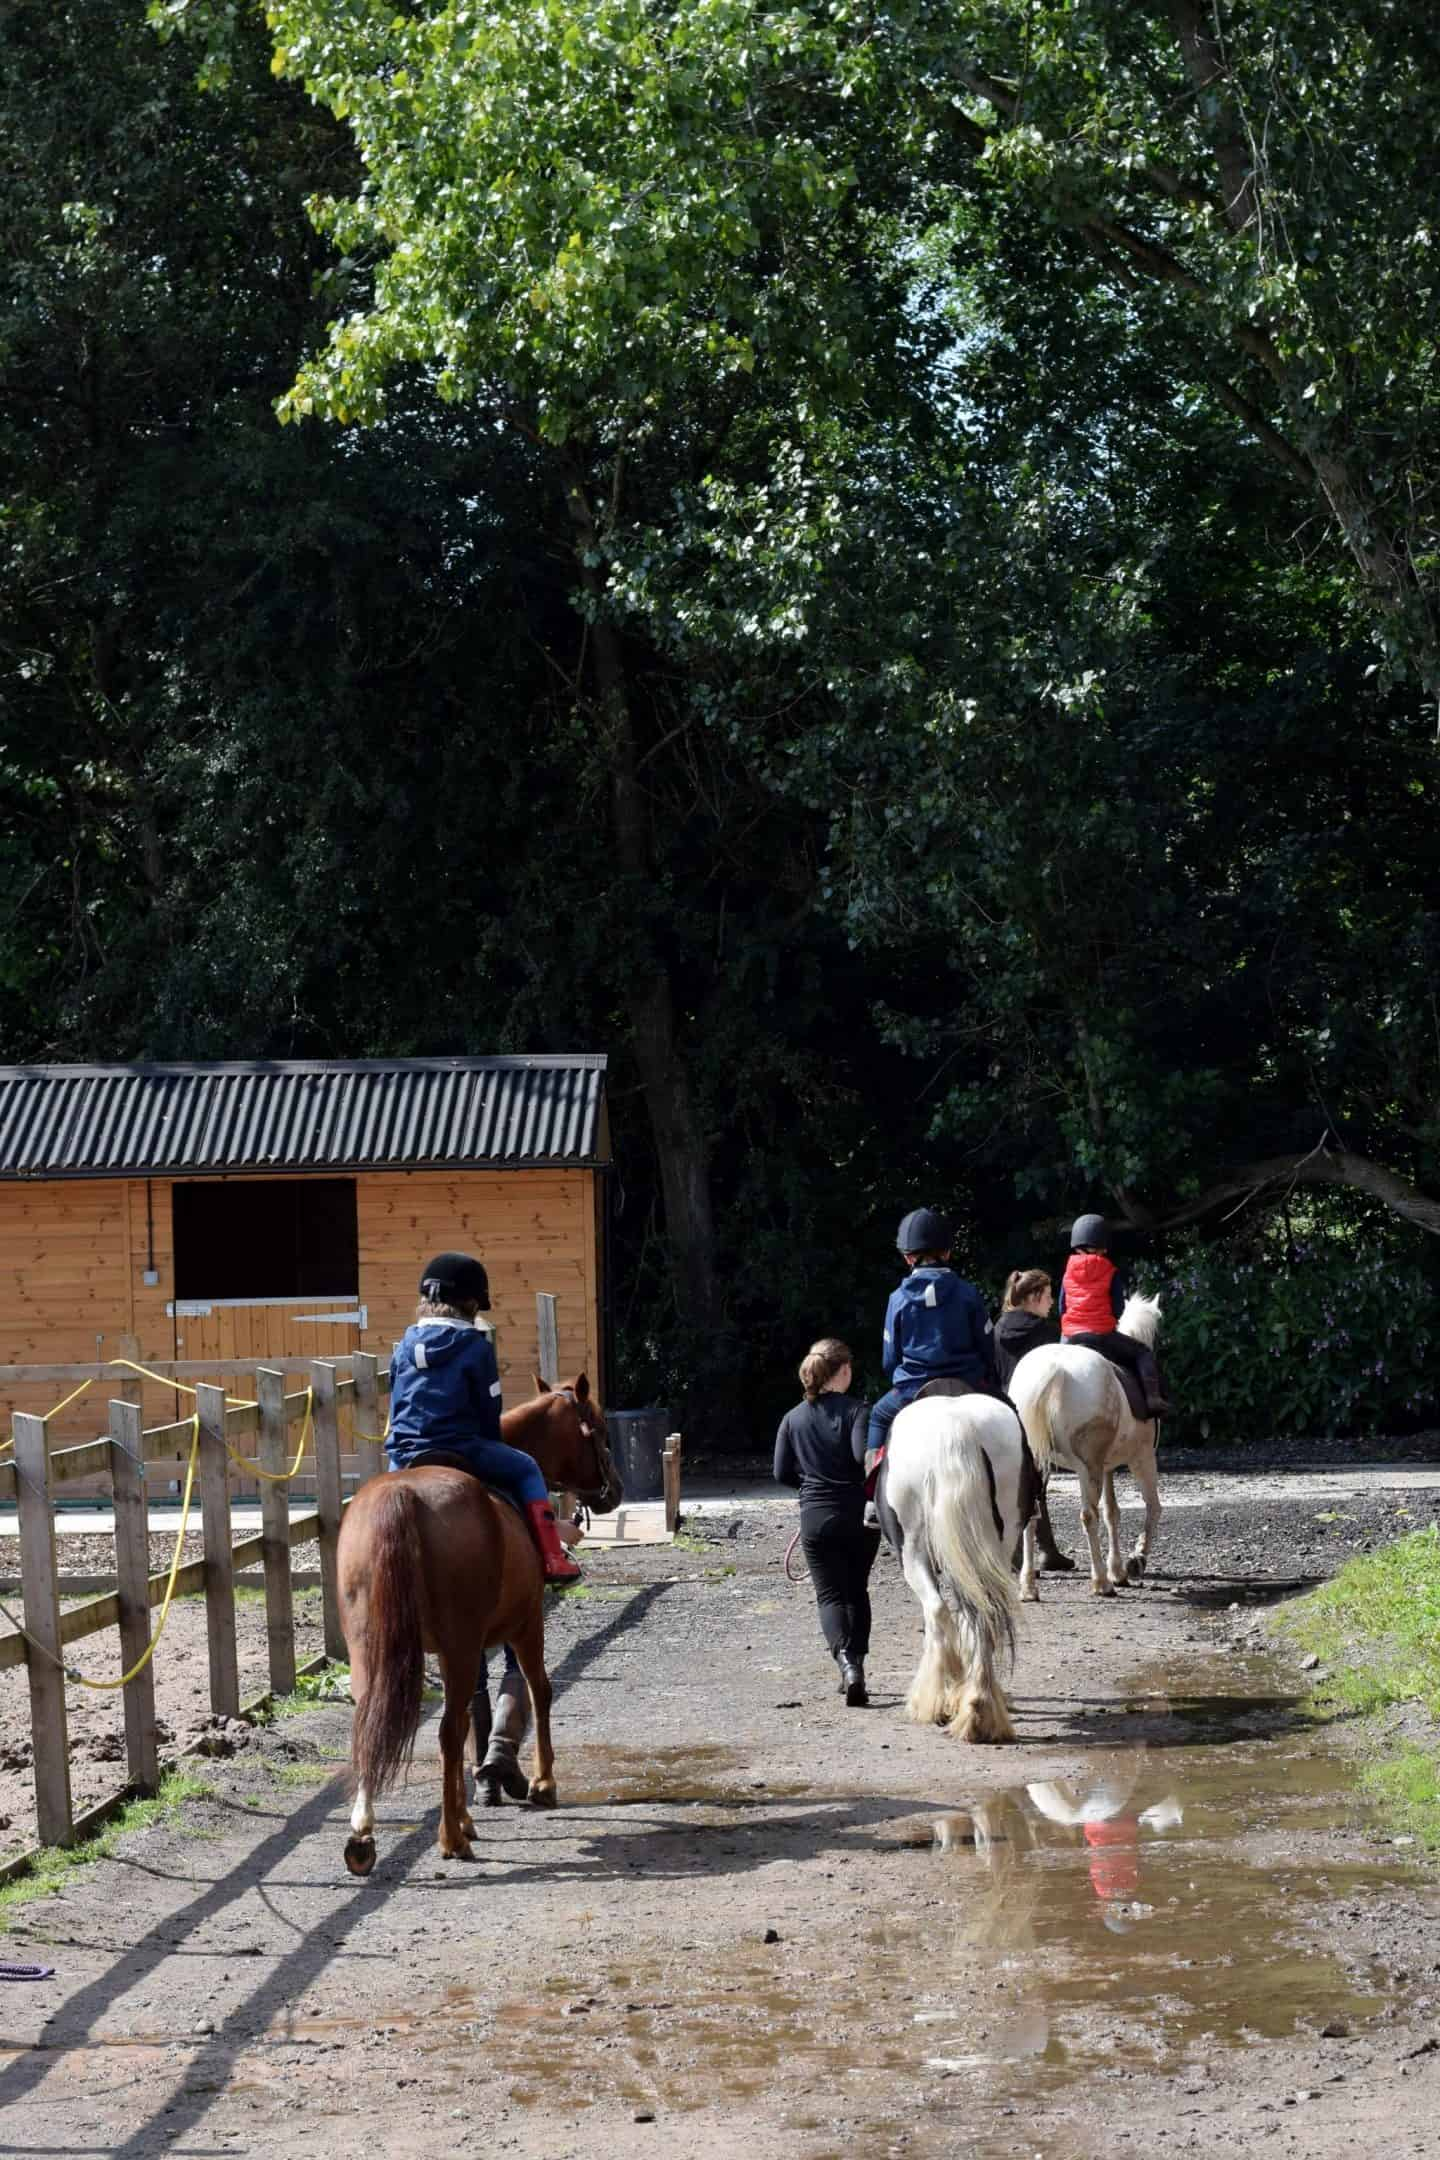 Horse riding lessons - £15 for half an hour